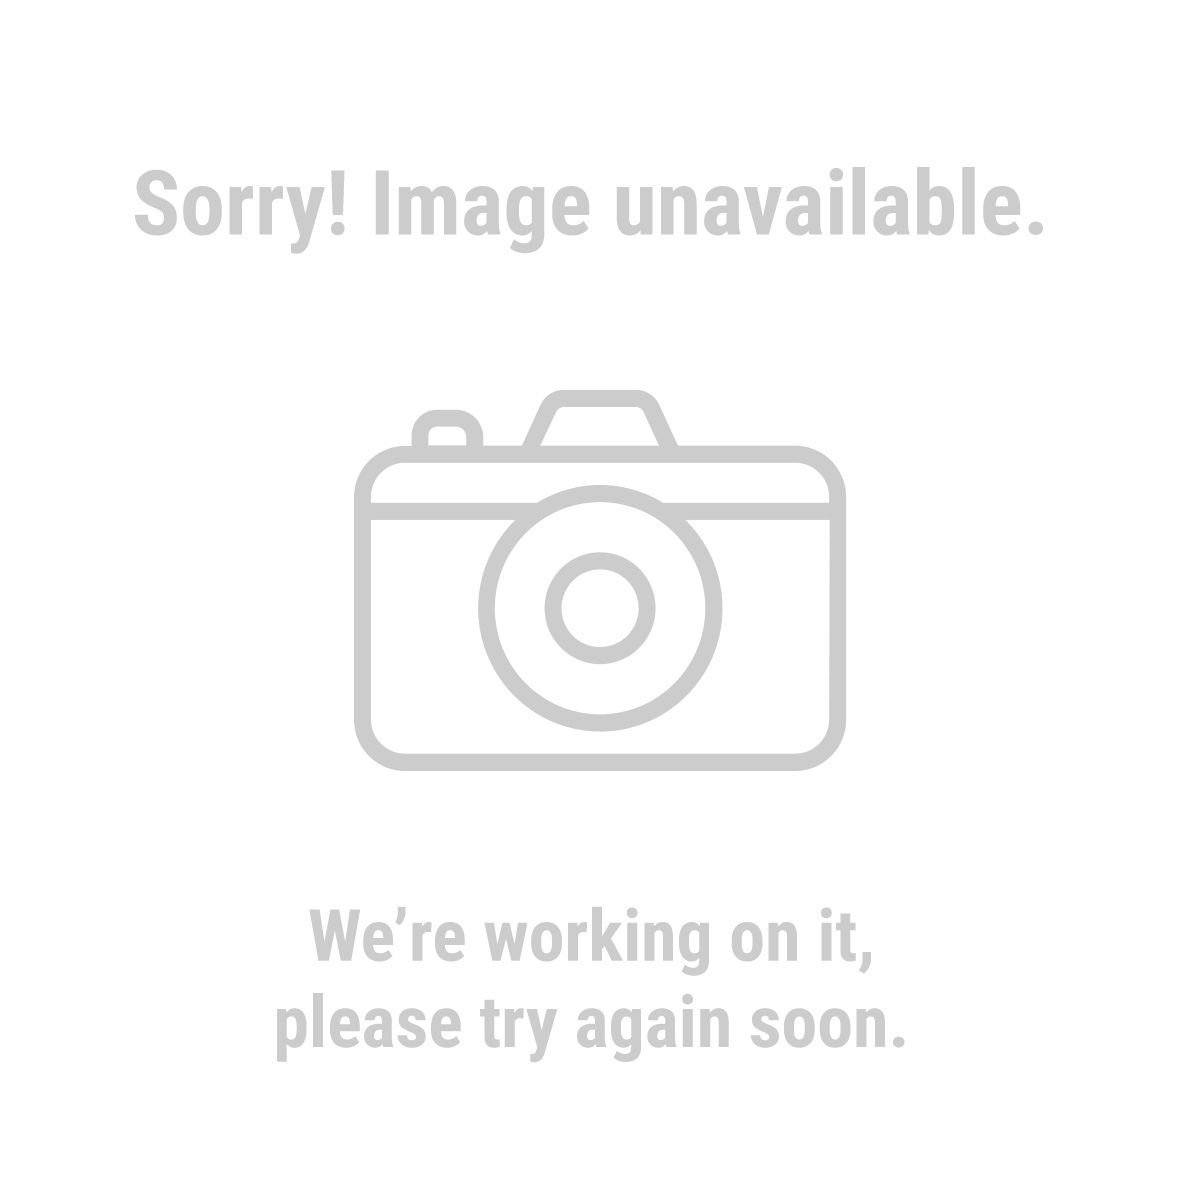 Haul-Master 61287 16 ft. E-Track Tie Down Strap